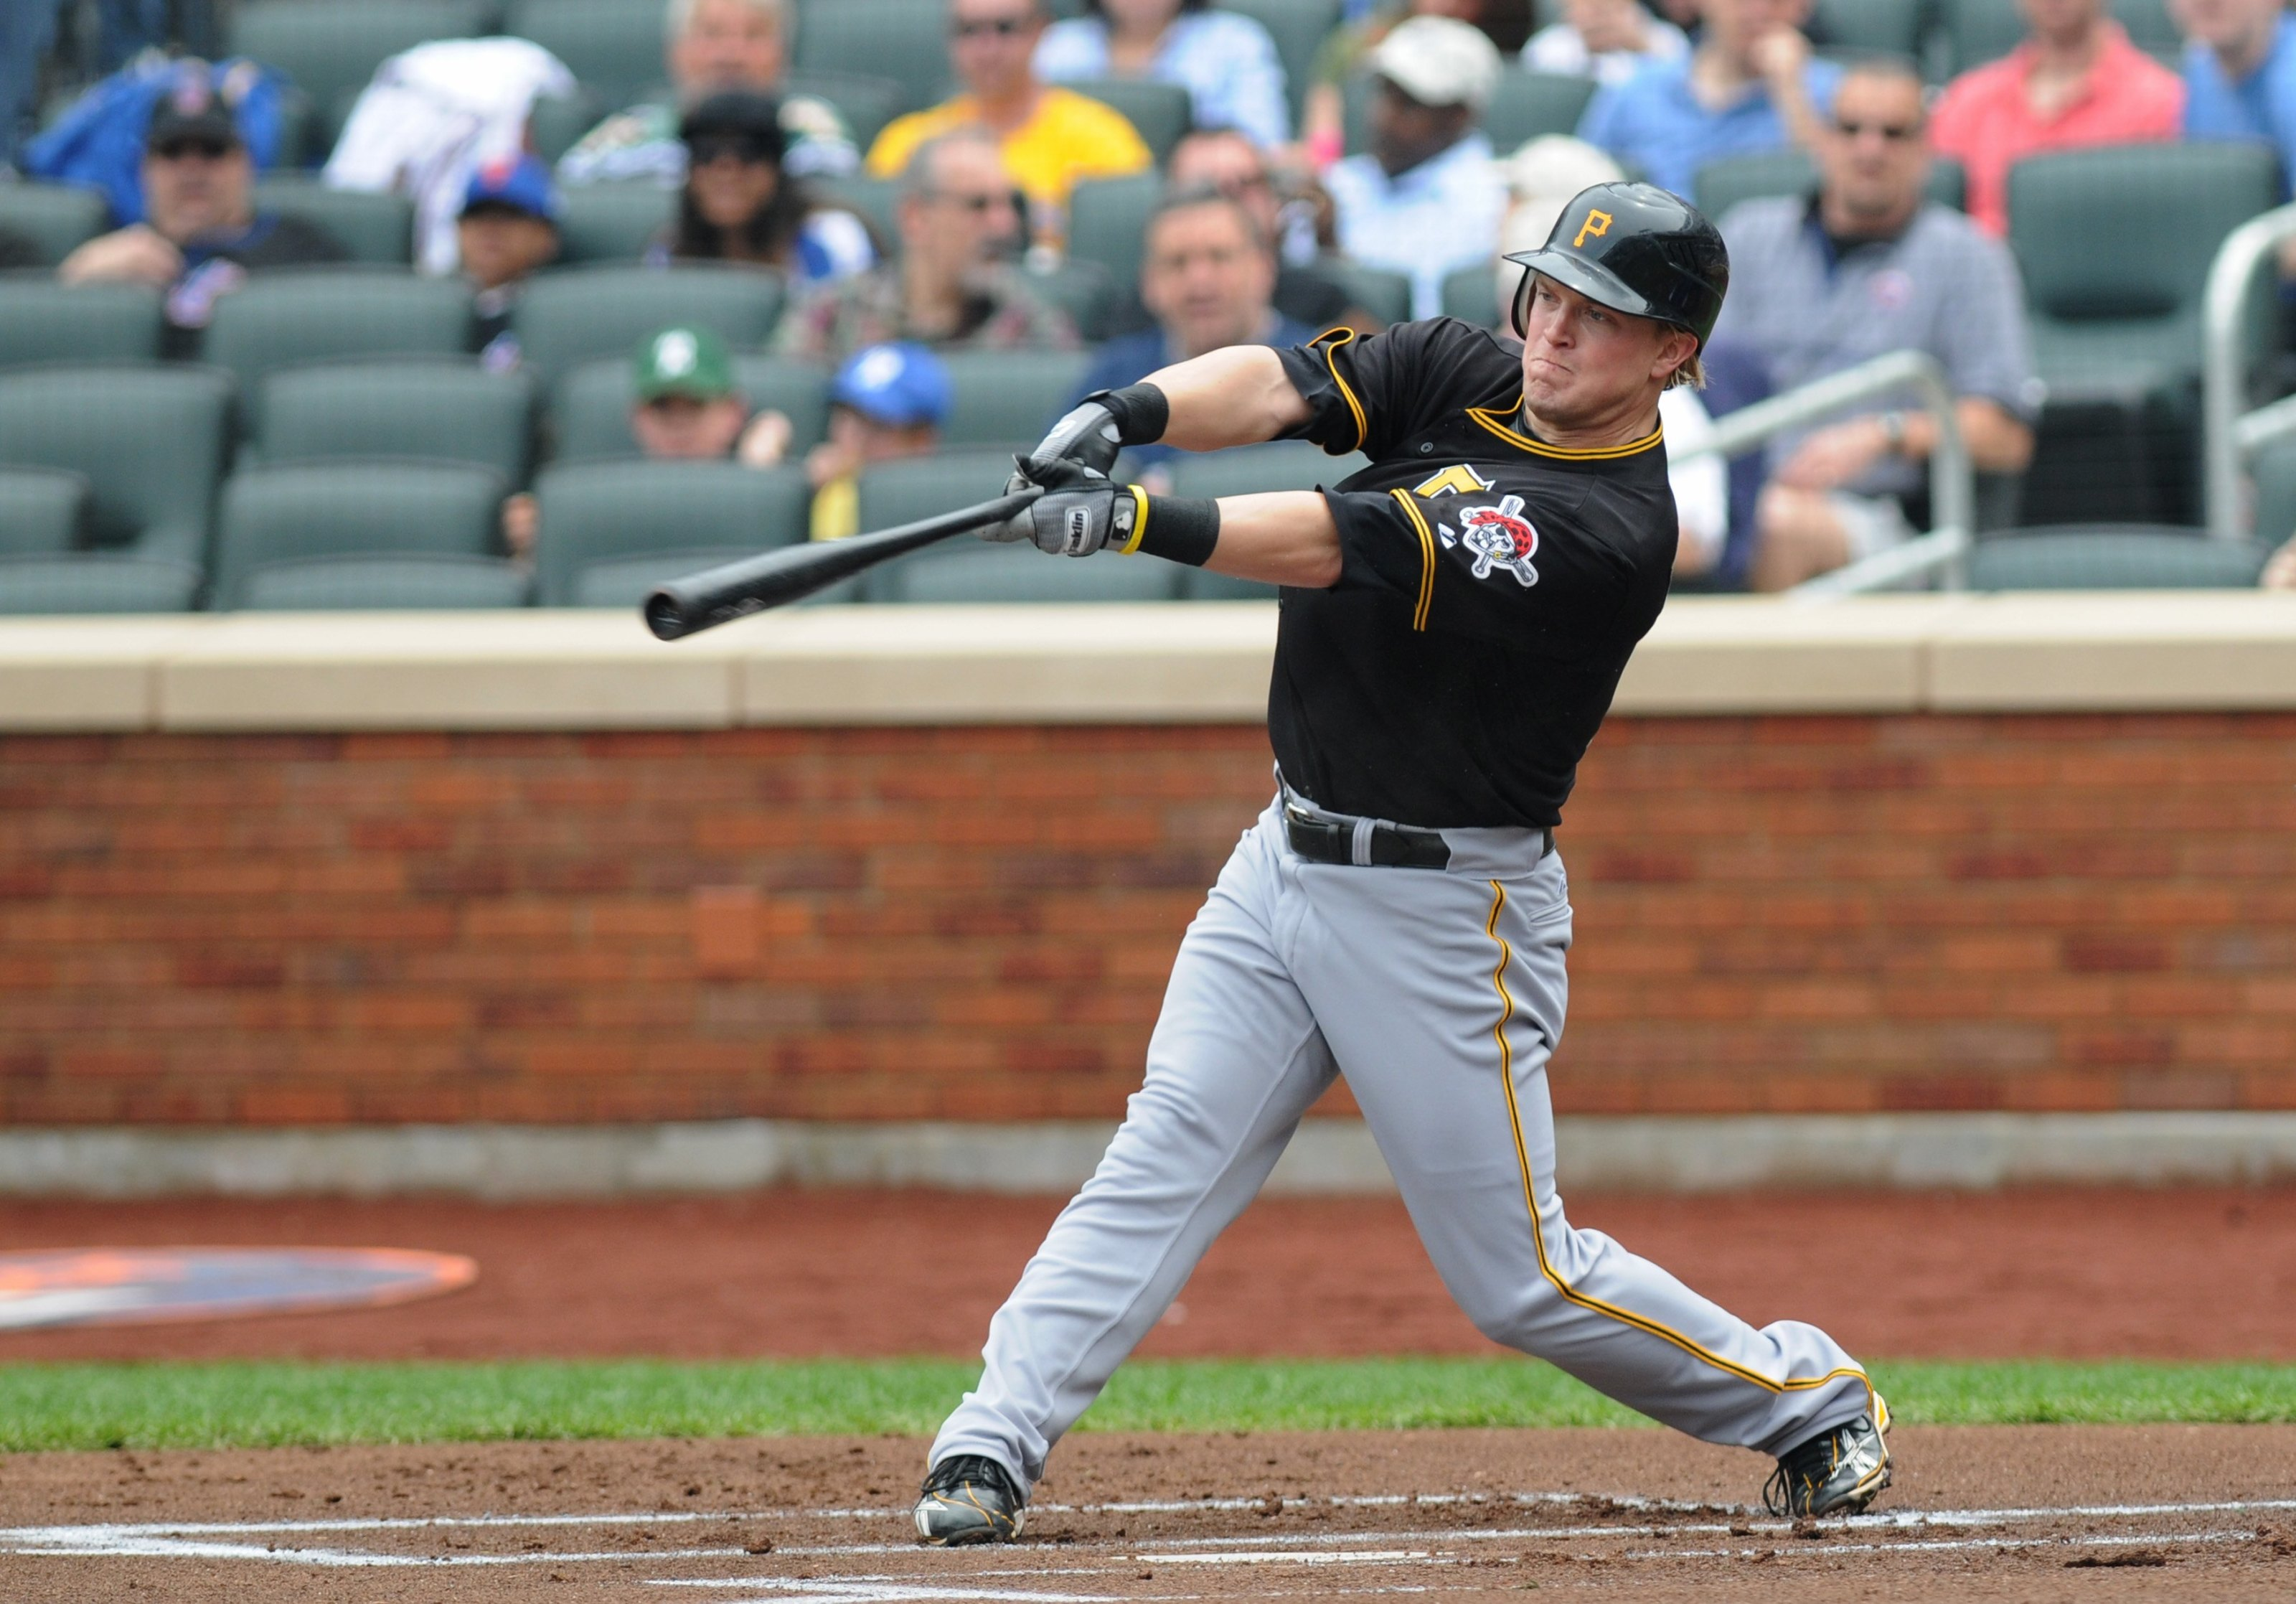 pittsburgh pirates revisiting the nate mclouth trade https rumbunter com 2020 05 13 pittsburgh pirates revisiting nate mclouth trade